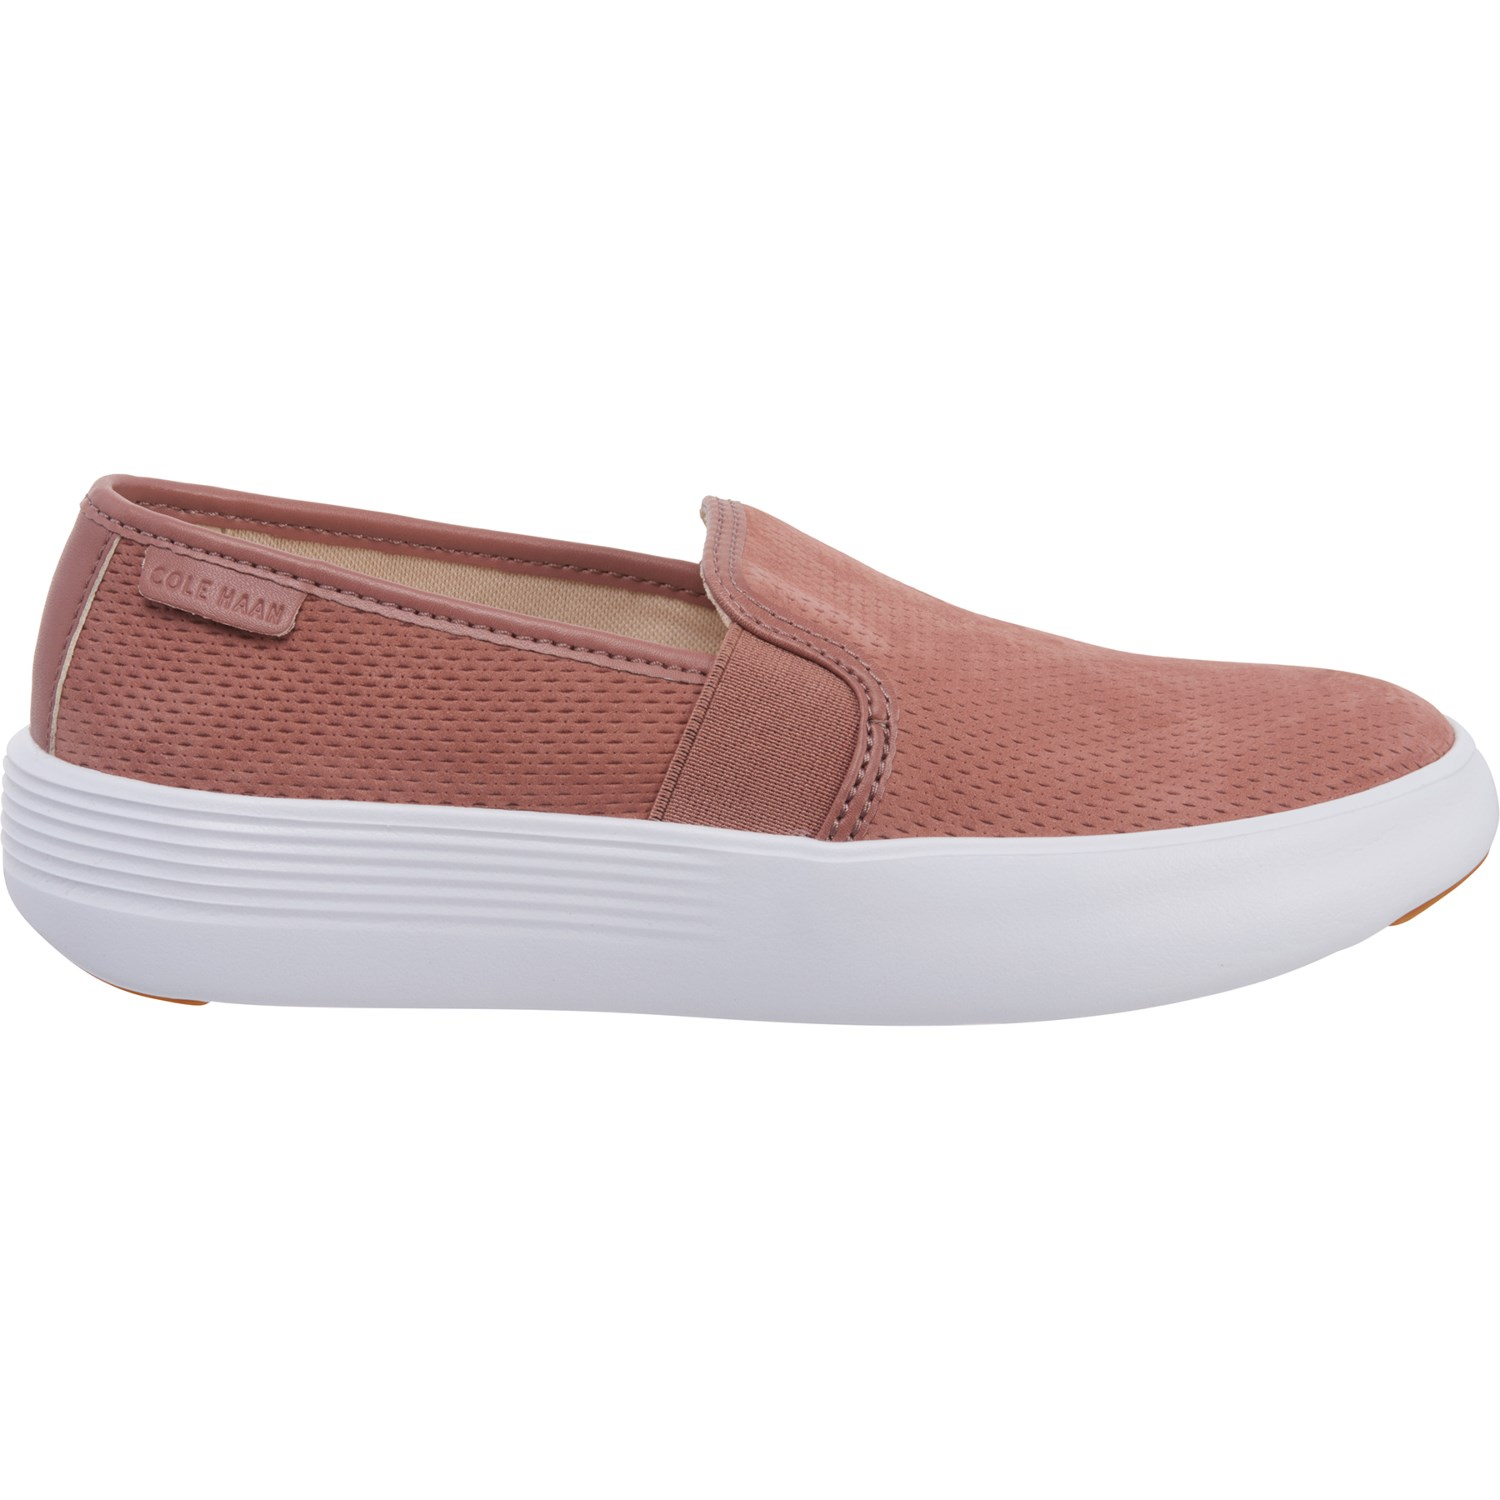 100% original 100% quality official price Cole Haan Grand Crosscourt Flatform Sneakers - Leather, Slip-Ons (For Women)